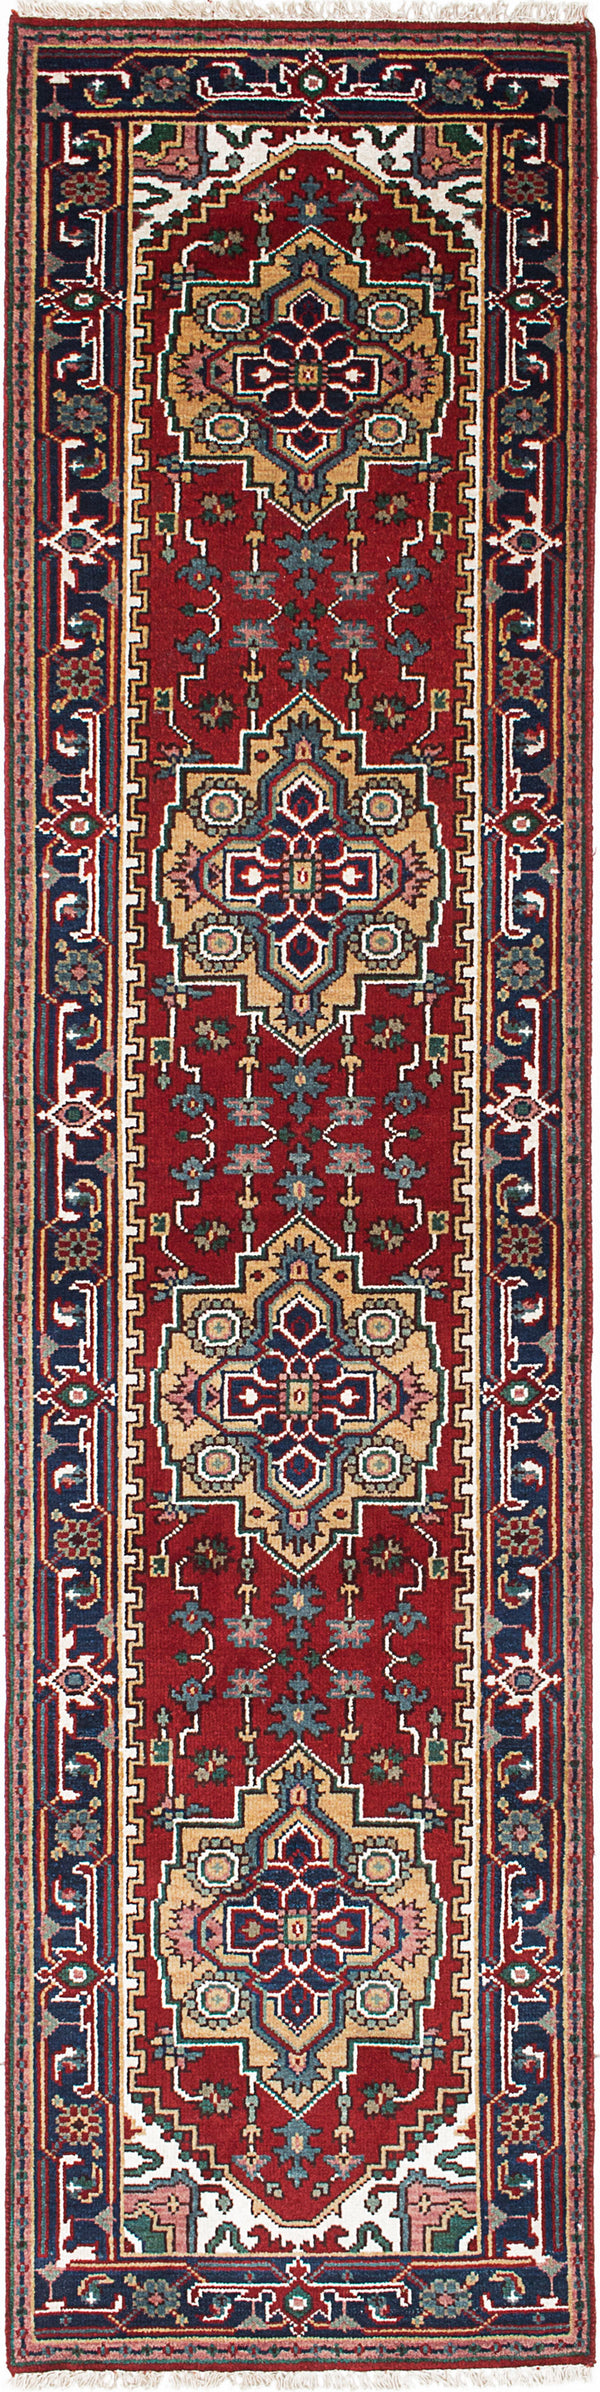 "Hand-knotted Indian Floral  Traditional Serapi-Heritage Runner rug  Dark Burgundy 2'7 x 10'2"" """